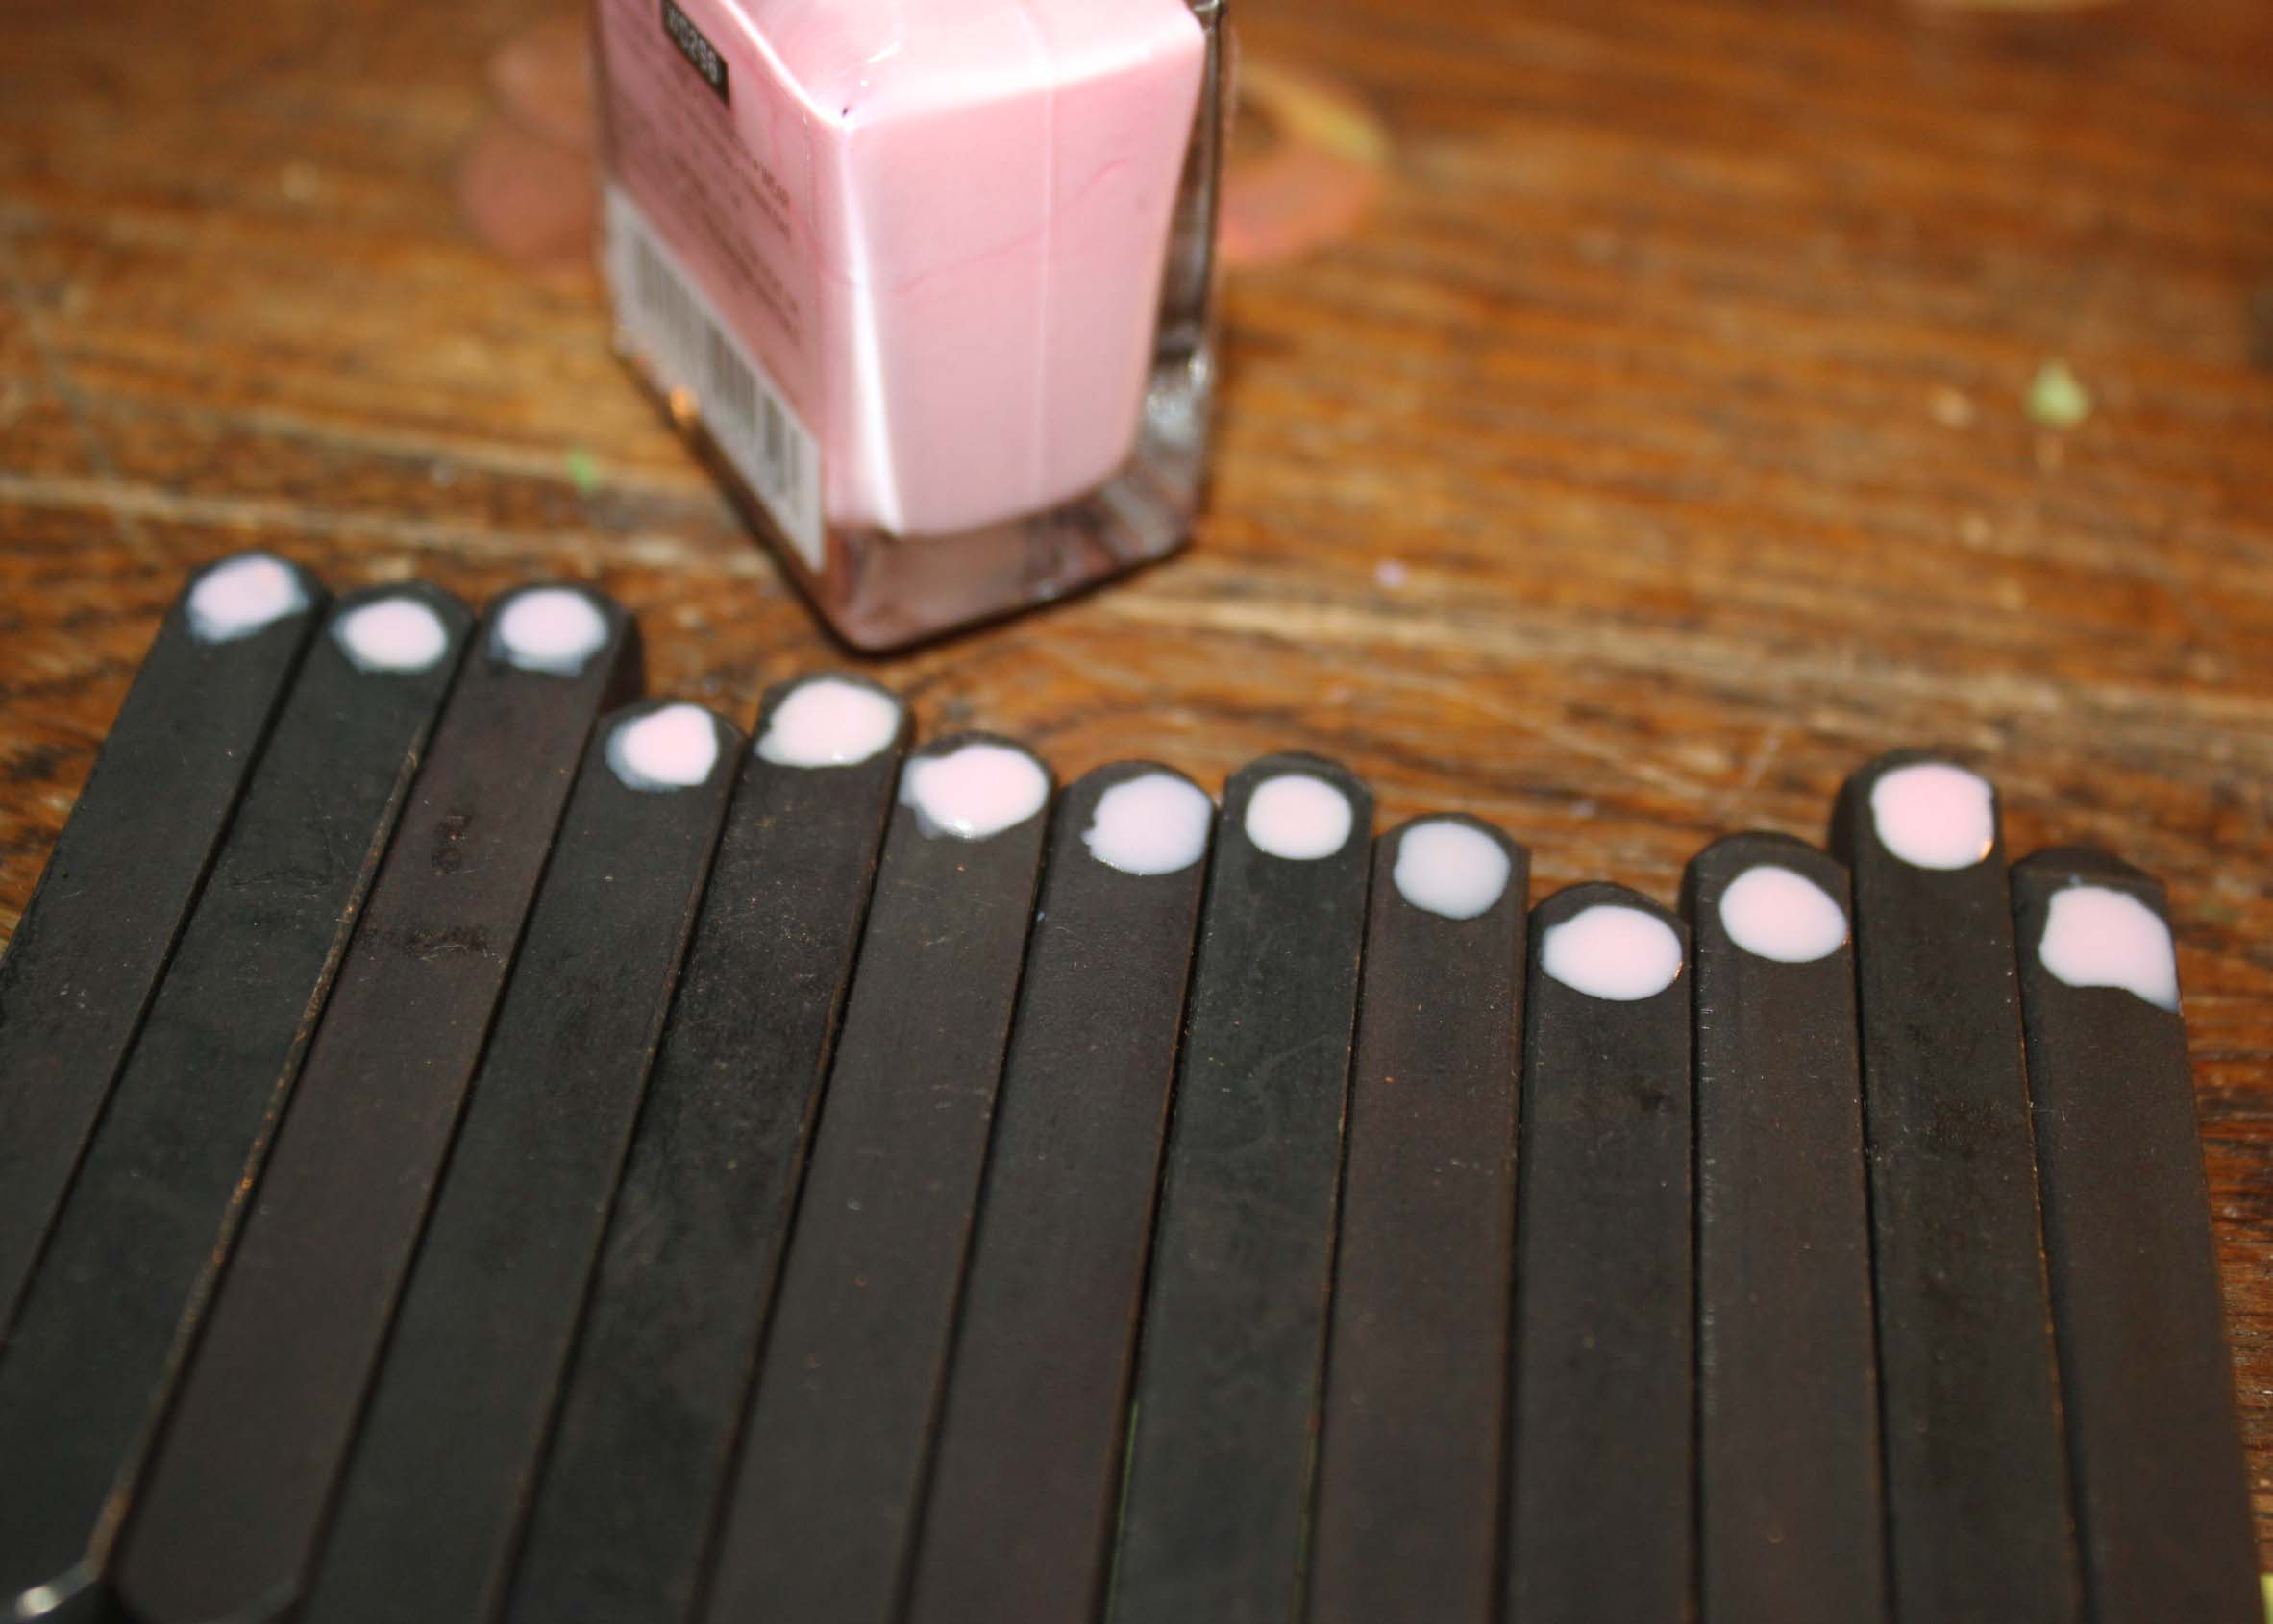 Metal stamps with a dot to label the front of the stamp